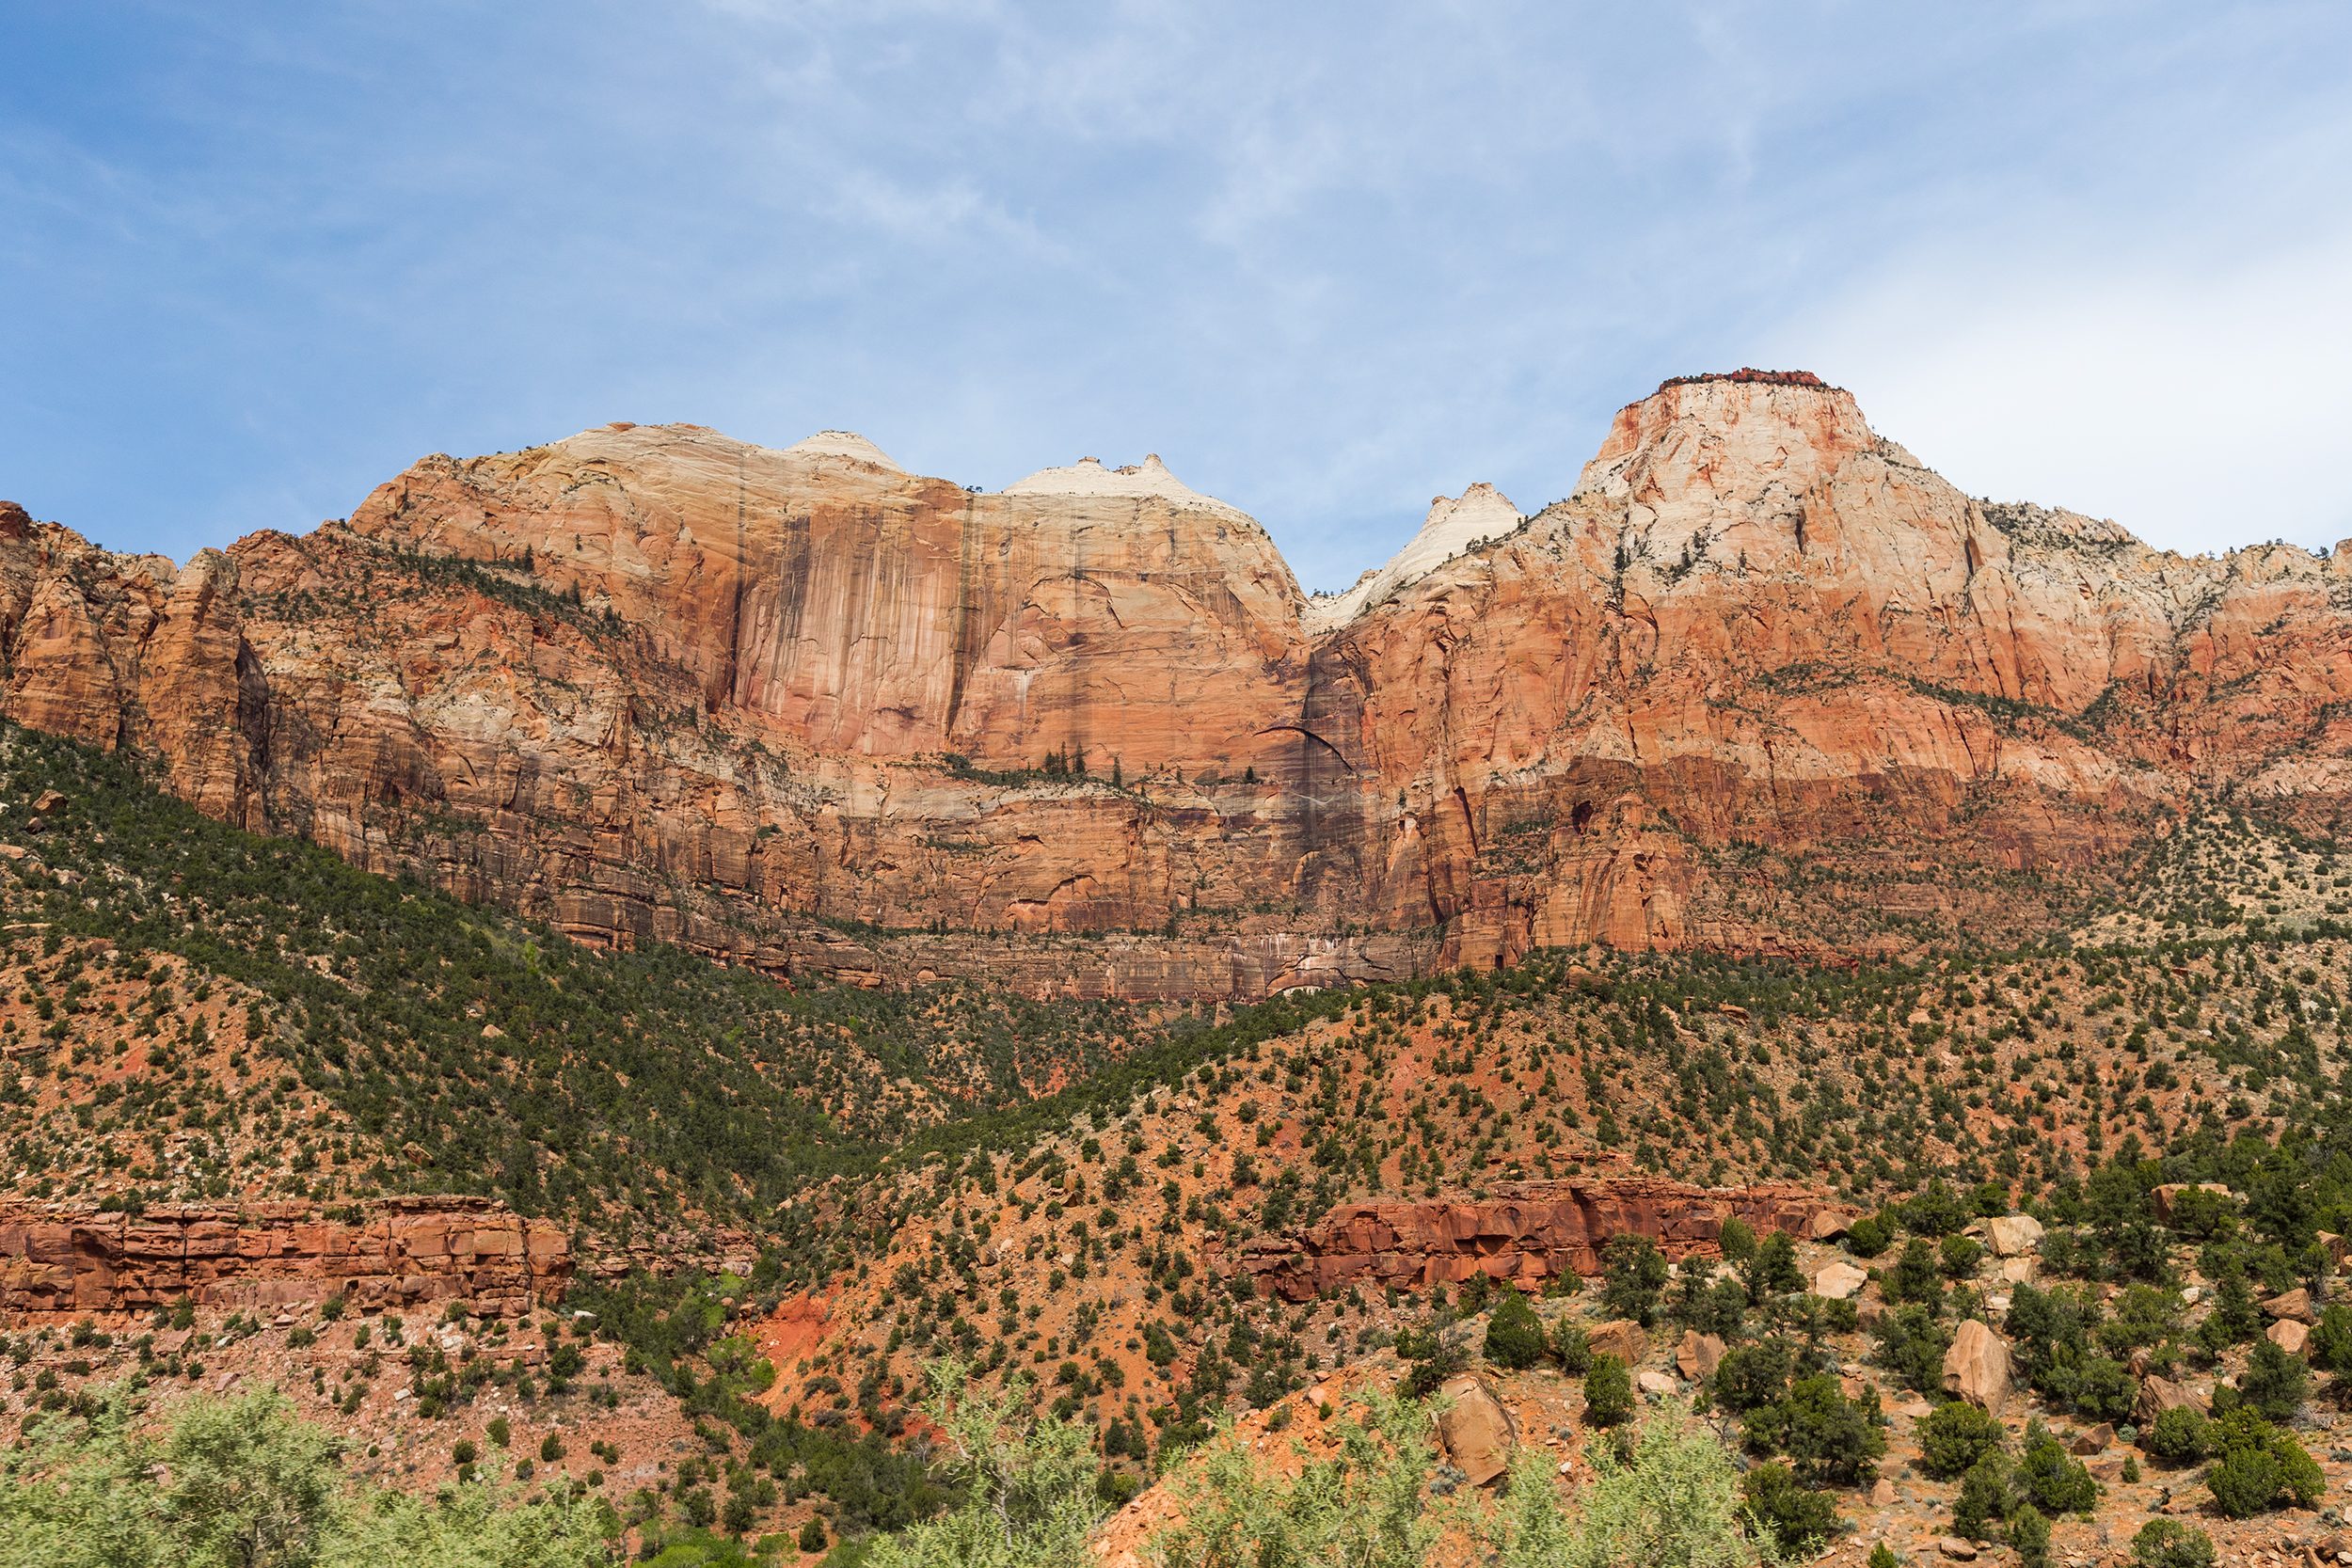 NATLPARKING_travel_rv_adventure_zionnationalpark_0957_WB2